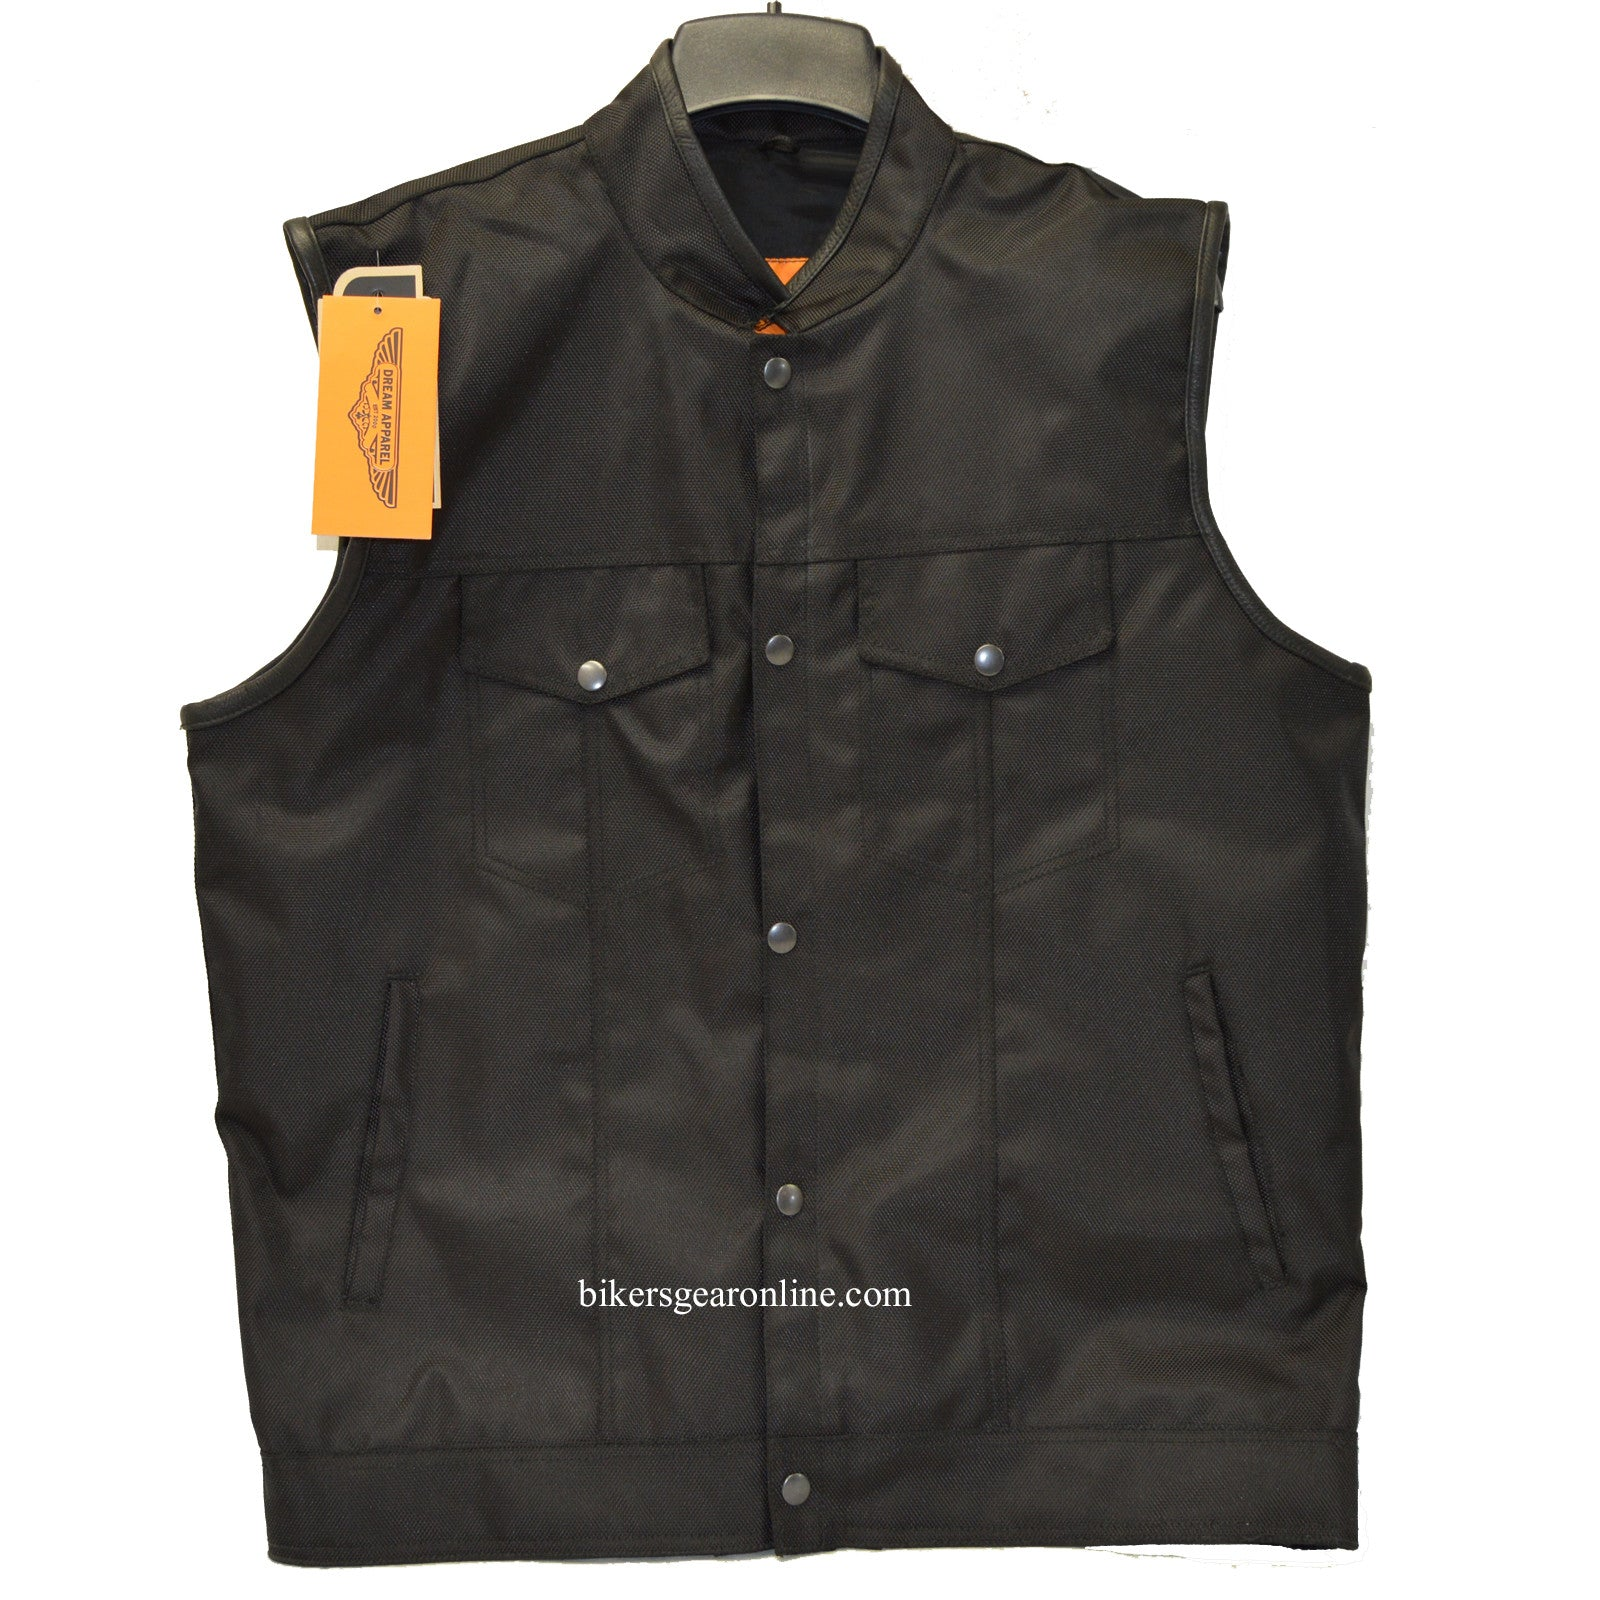 MEN'S SON OF ANARCHY STYLE TEXTILE VEST GUN POCKET